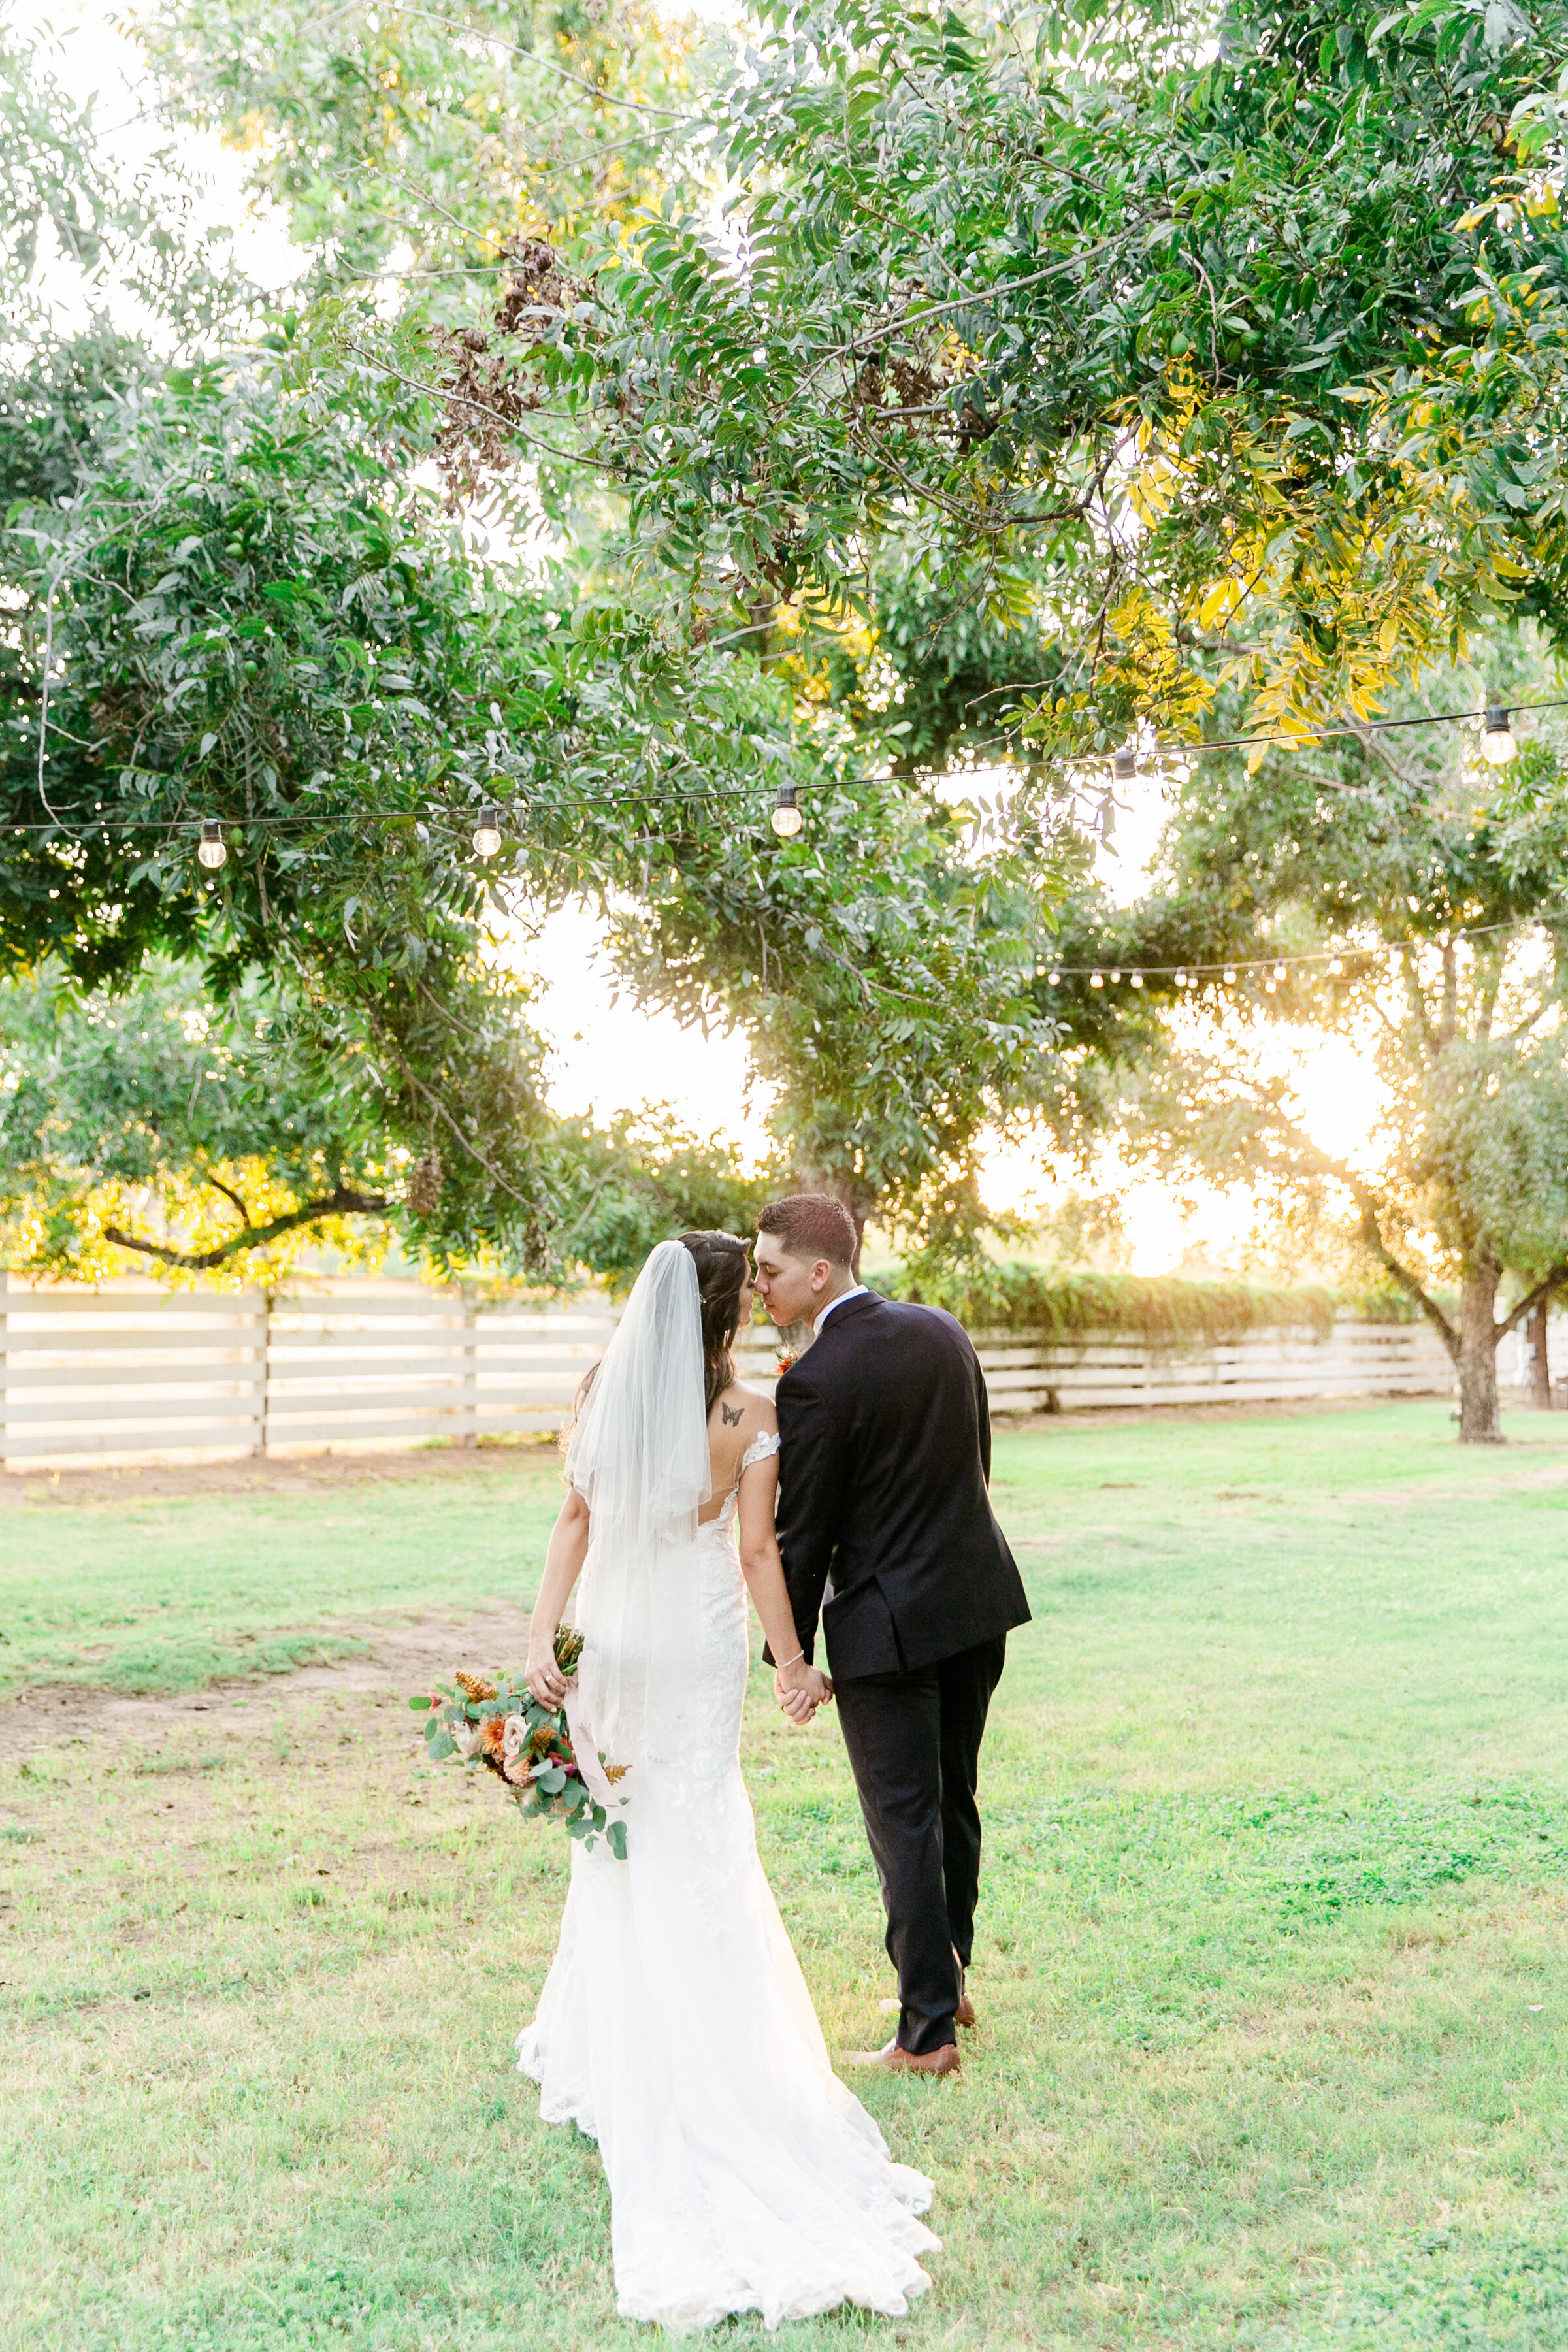 Karlie Colleen Photography - Phoenix Arizona - Farm At South Mountain Venue - Vanessa & Robert-601